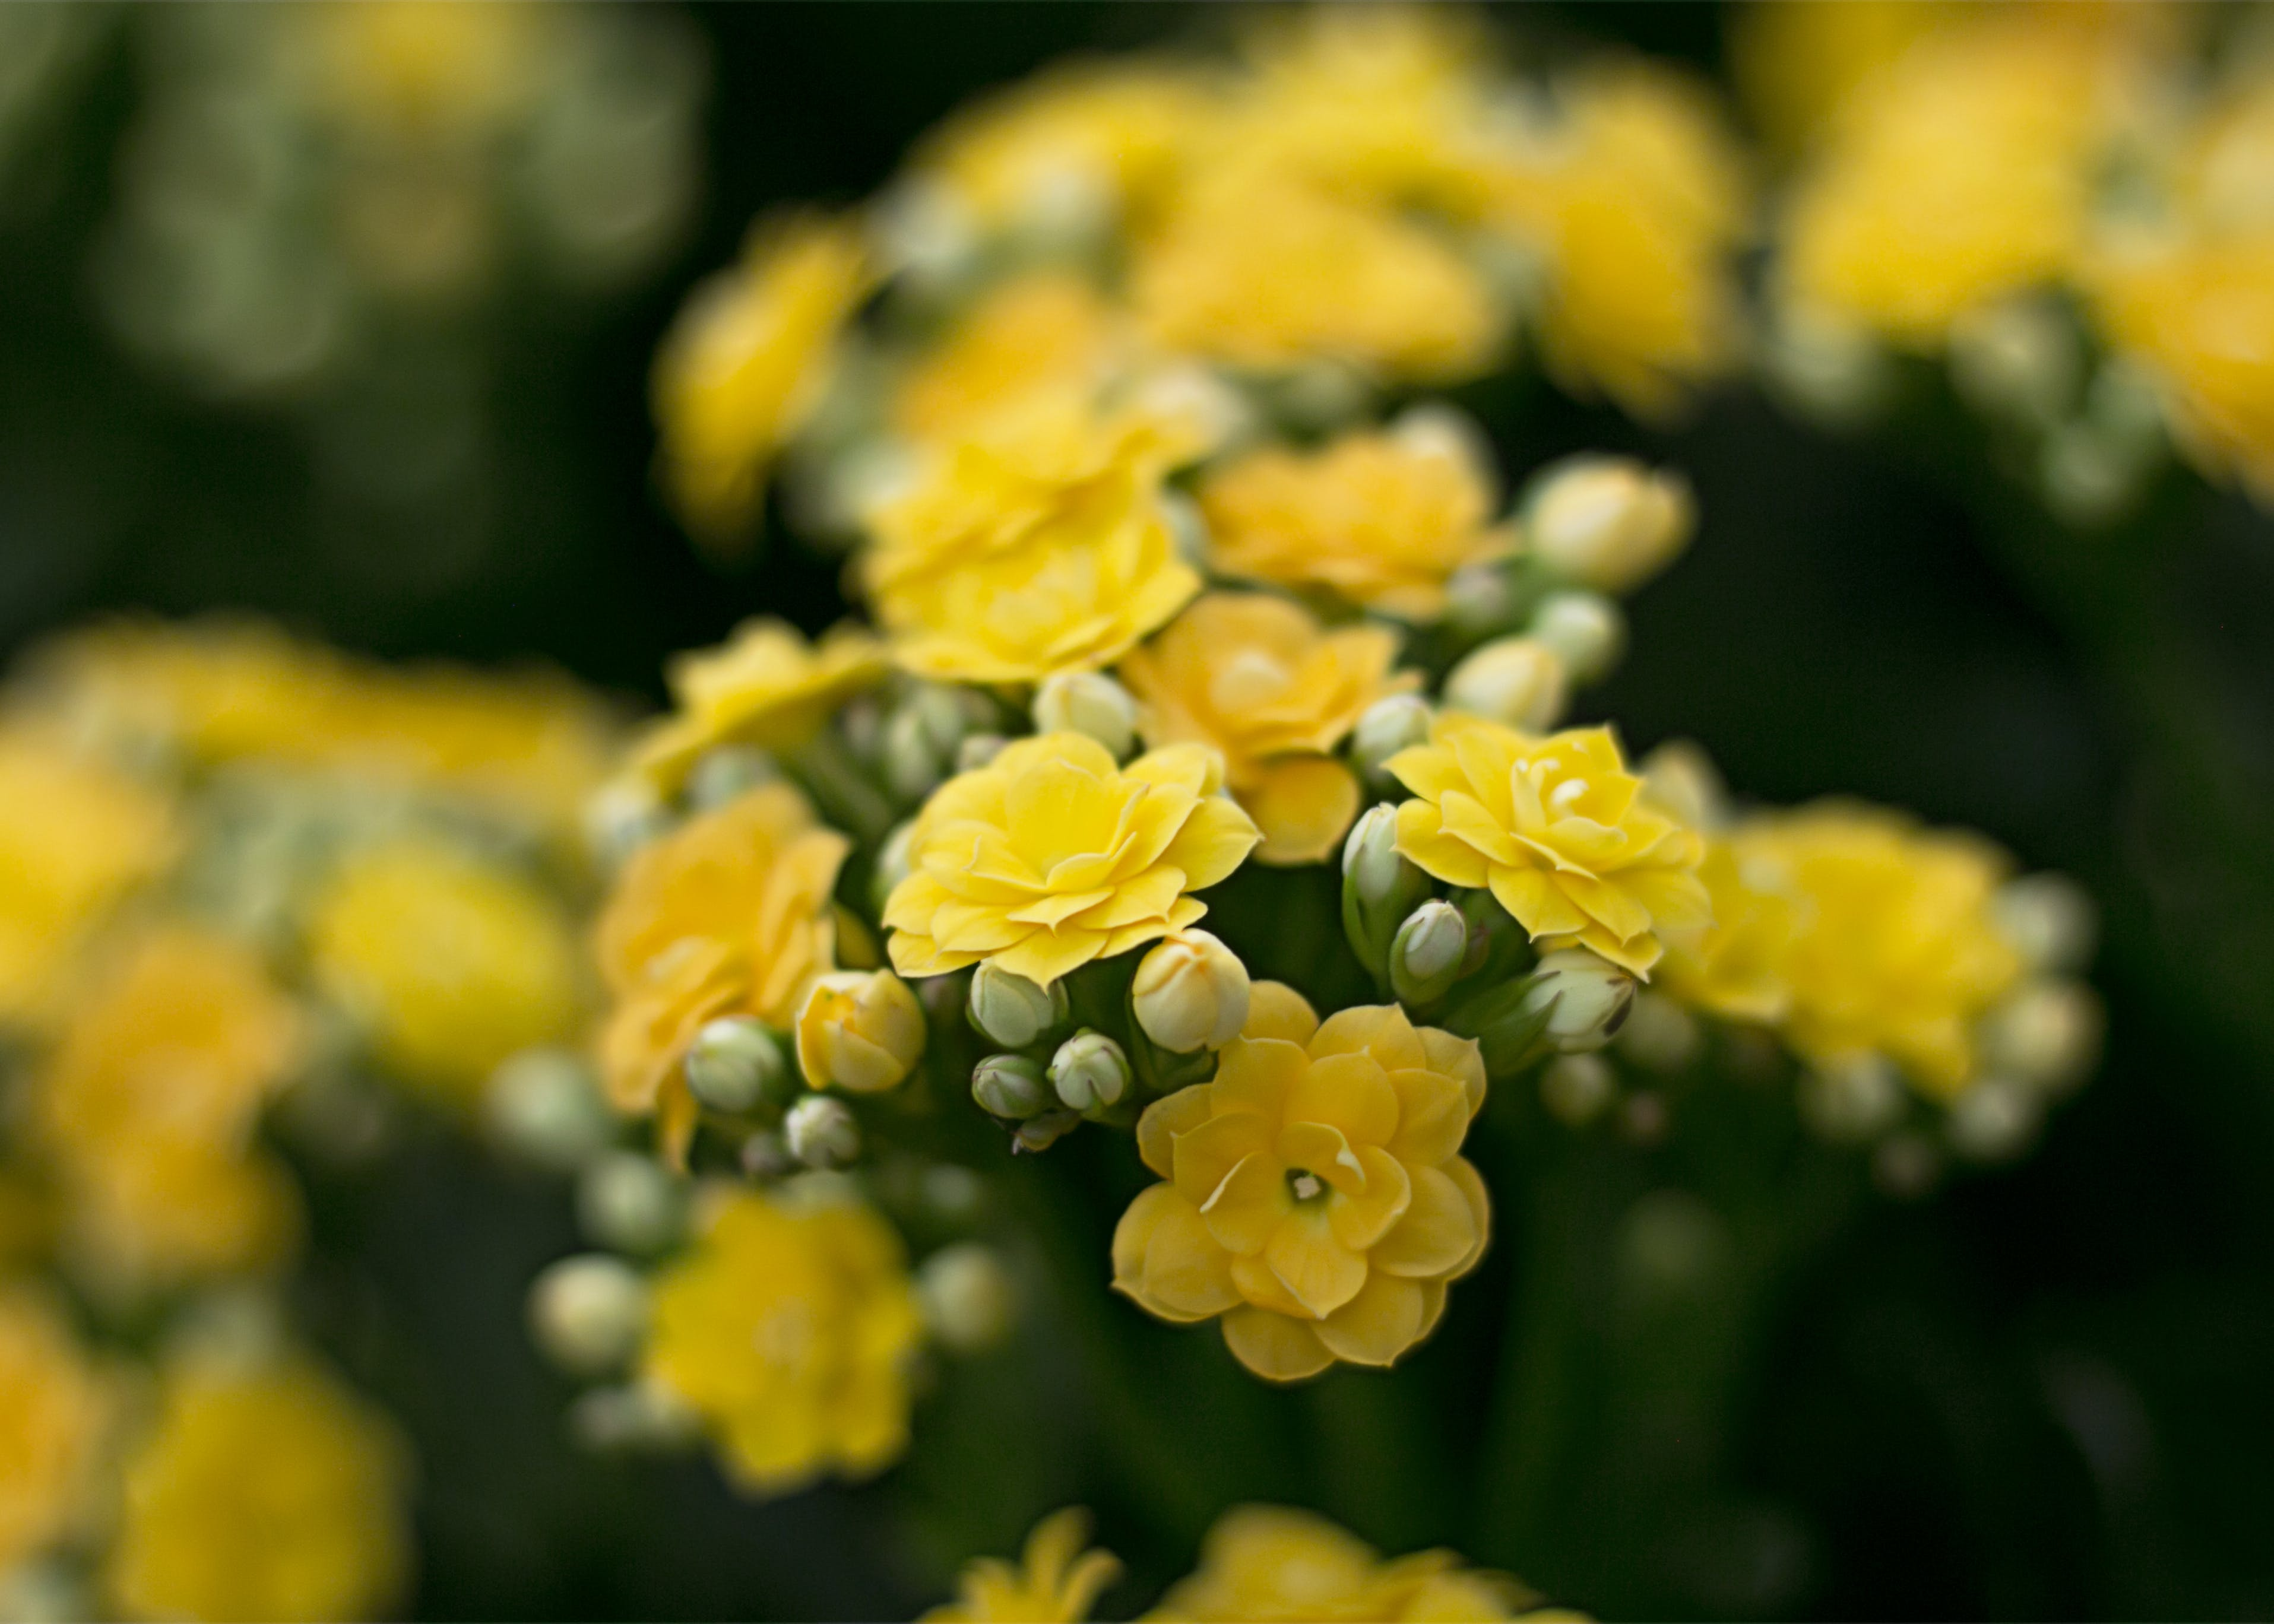 Close-Upp Photography of Yellow Flowers